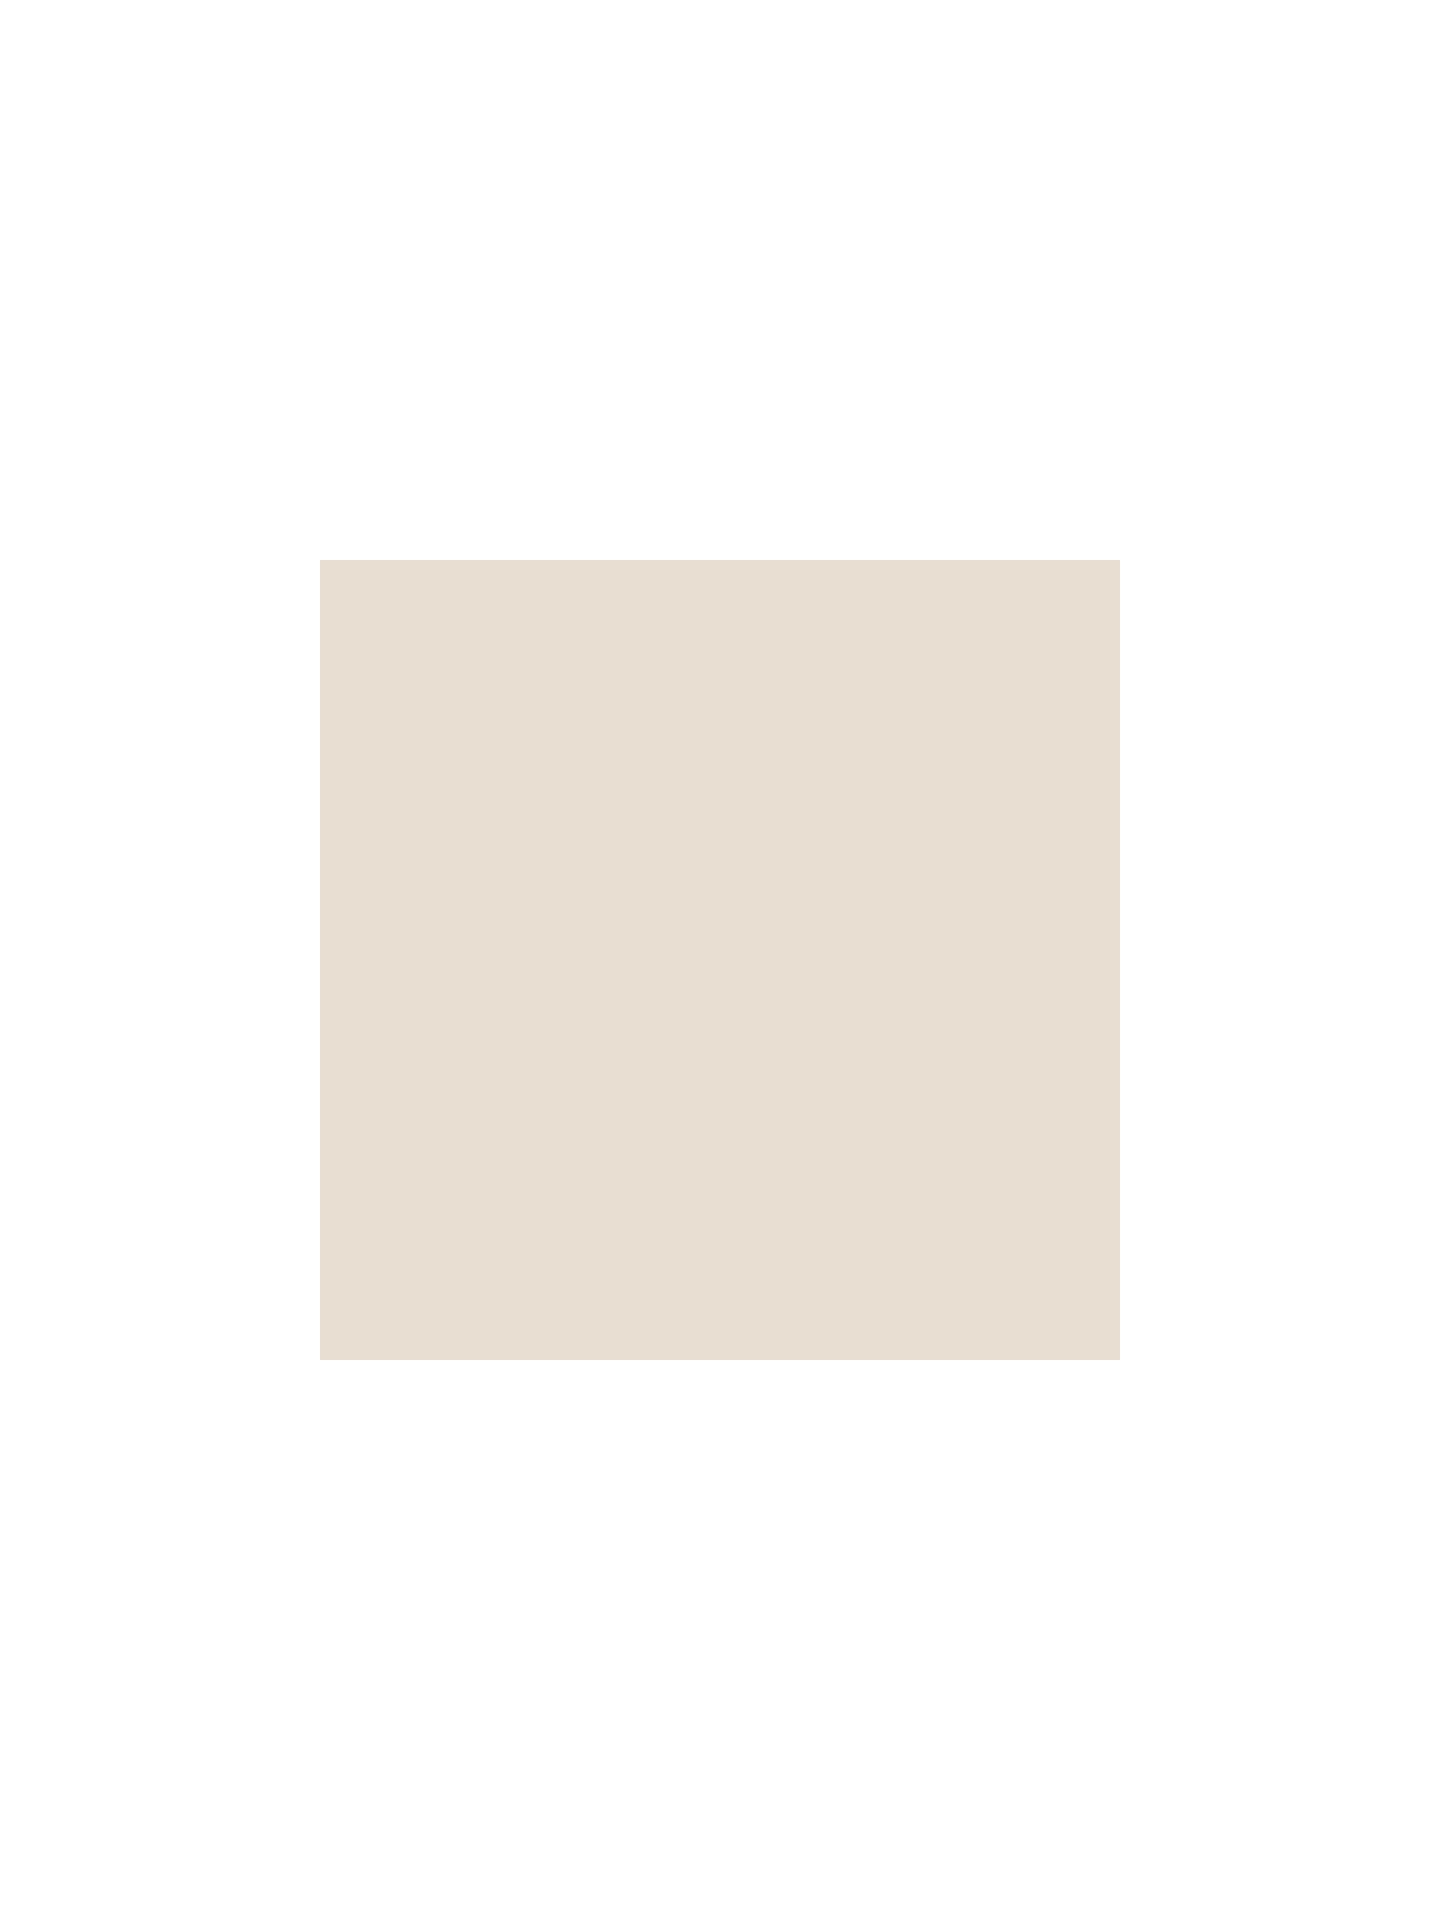 Buy The Little Greene Paint Company Intelligent Eggshell, Neutral Whites, Slaked Lime Mid (149), 1L Online at johnlewis.com